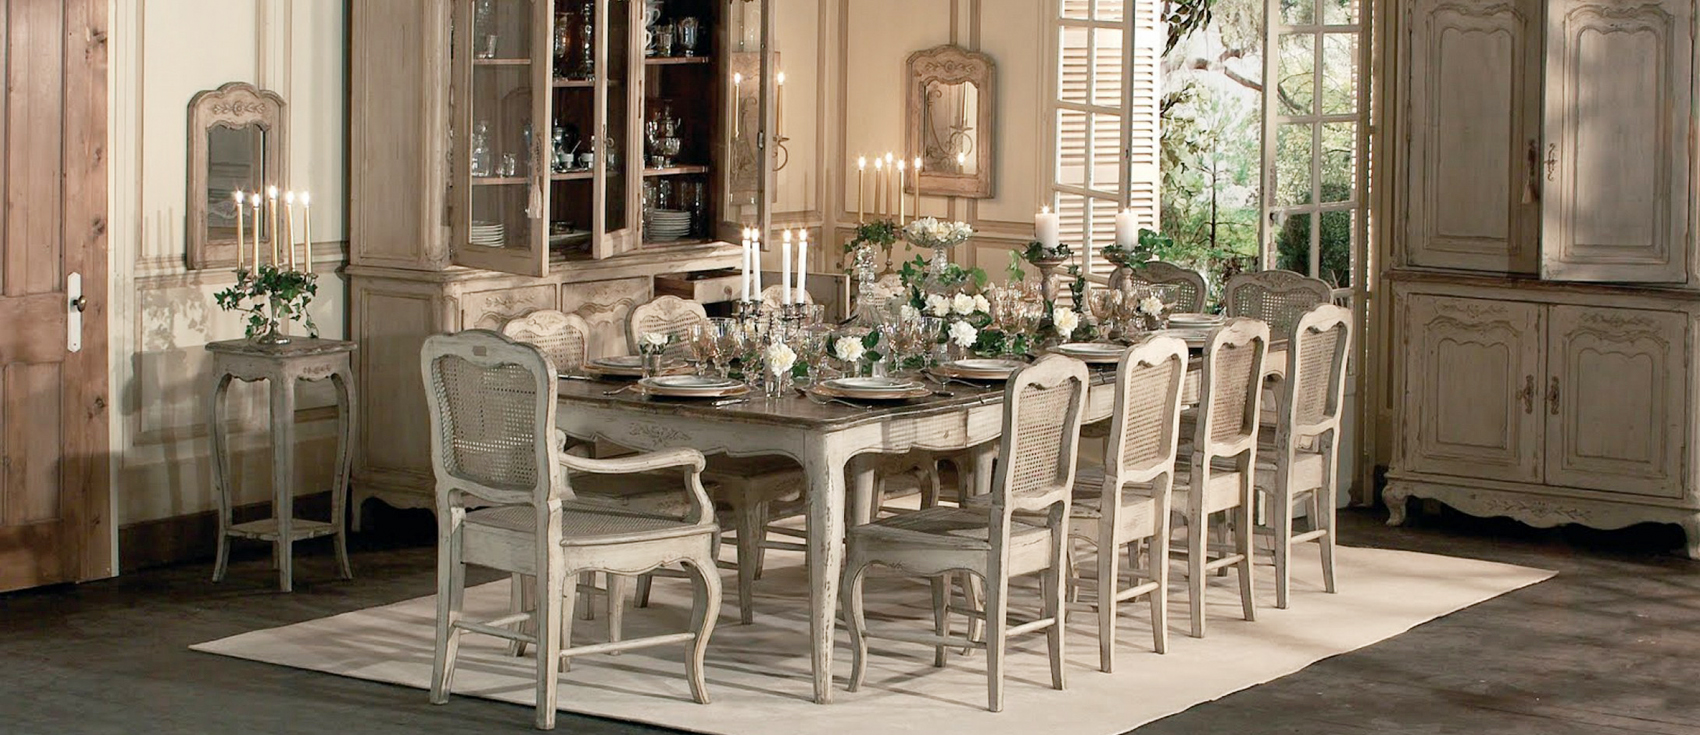 French Country Decor french country decor & french country decorating ideas